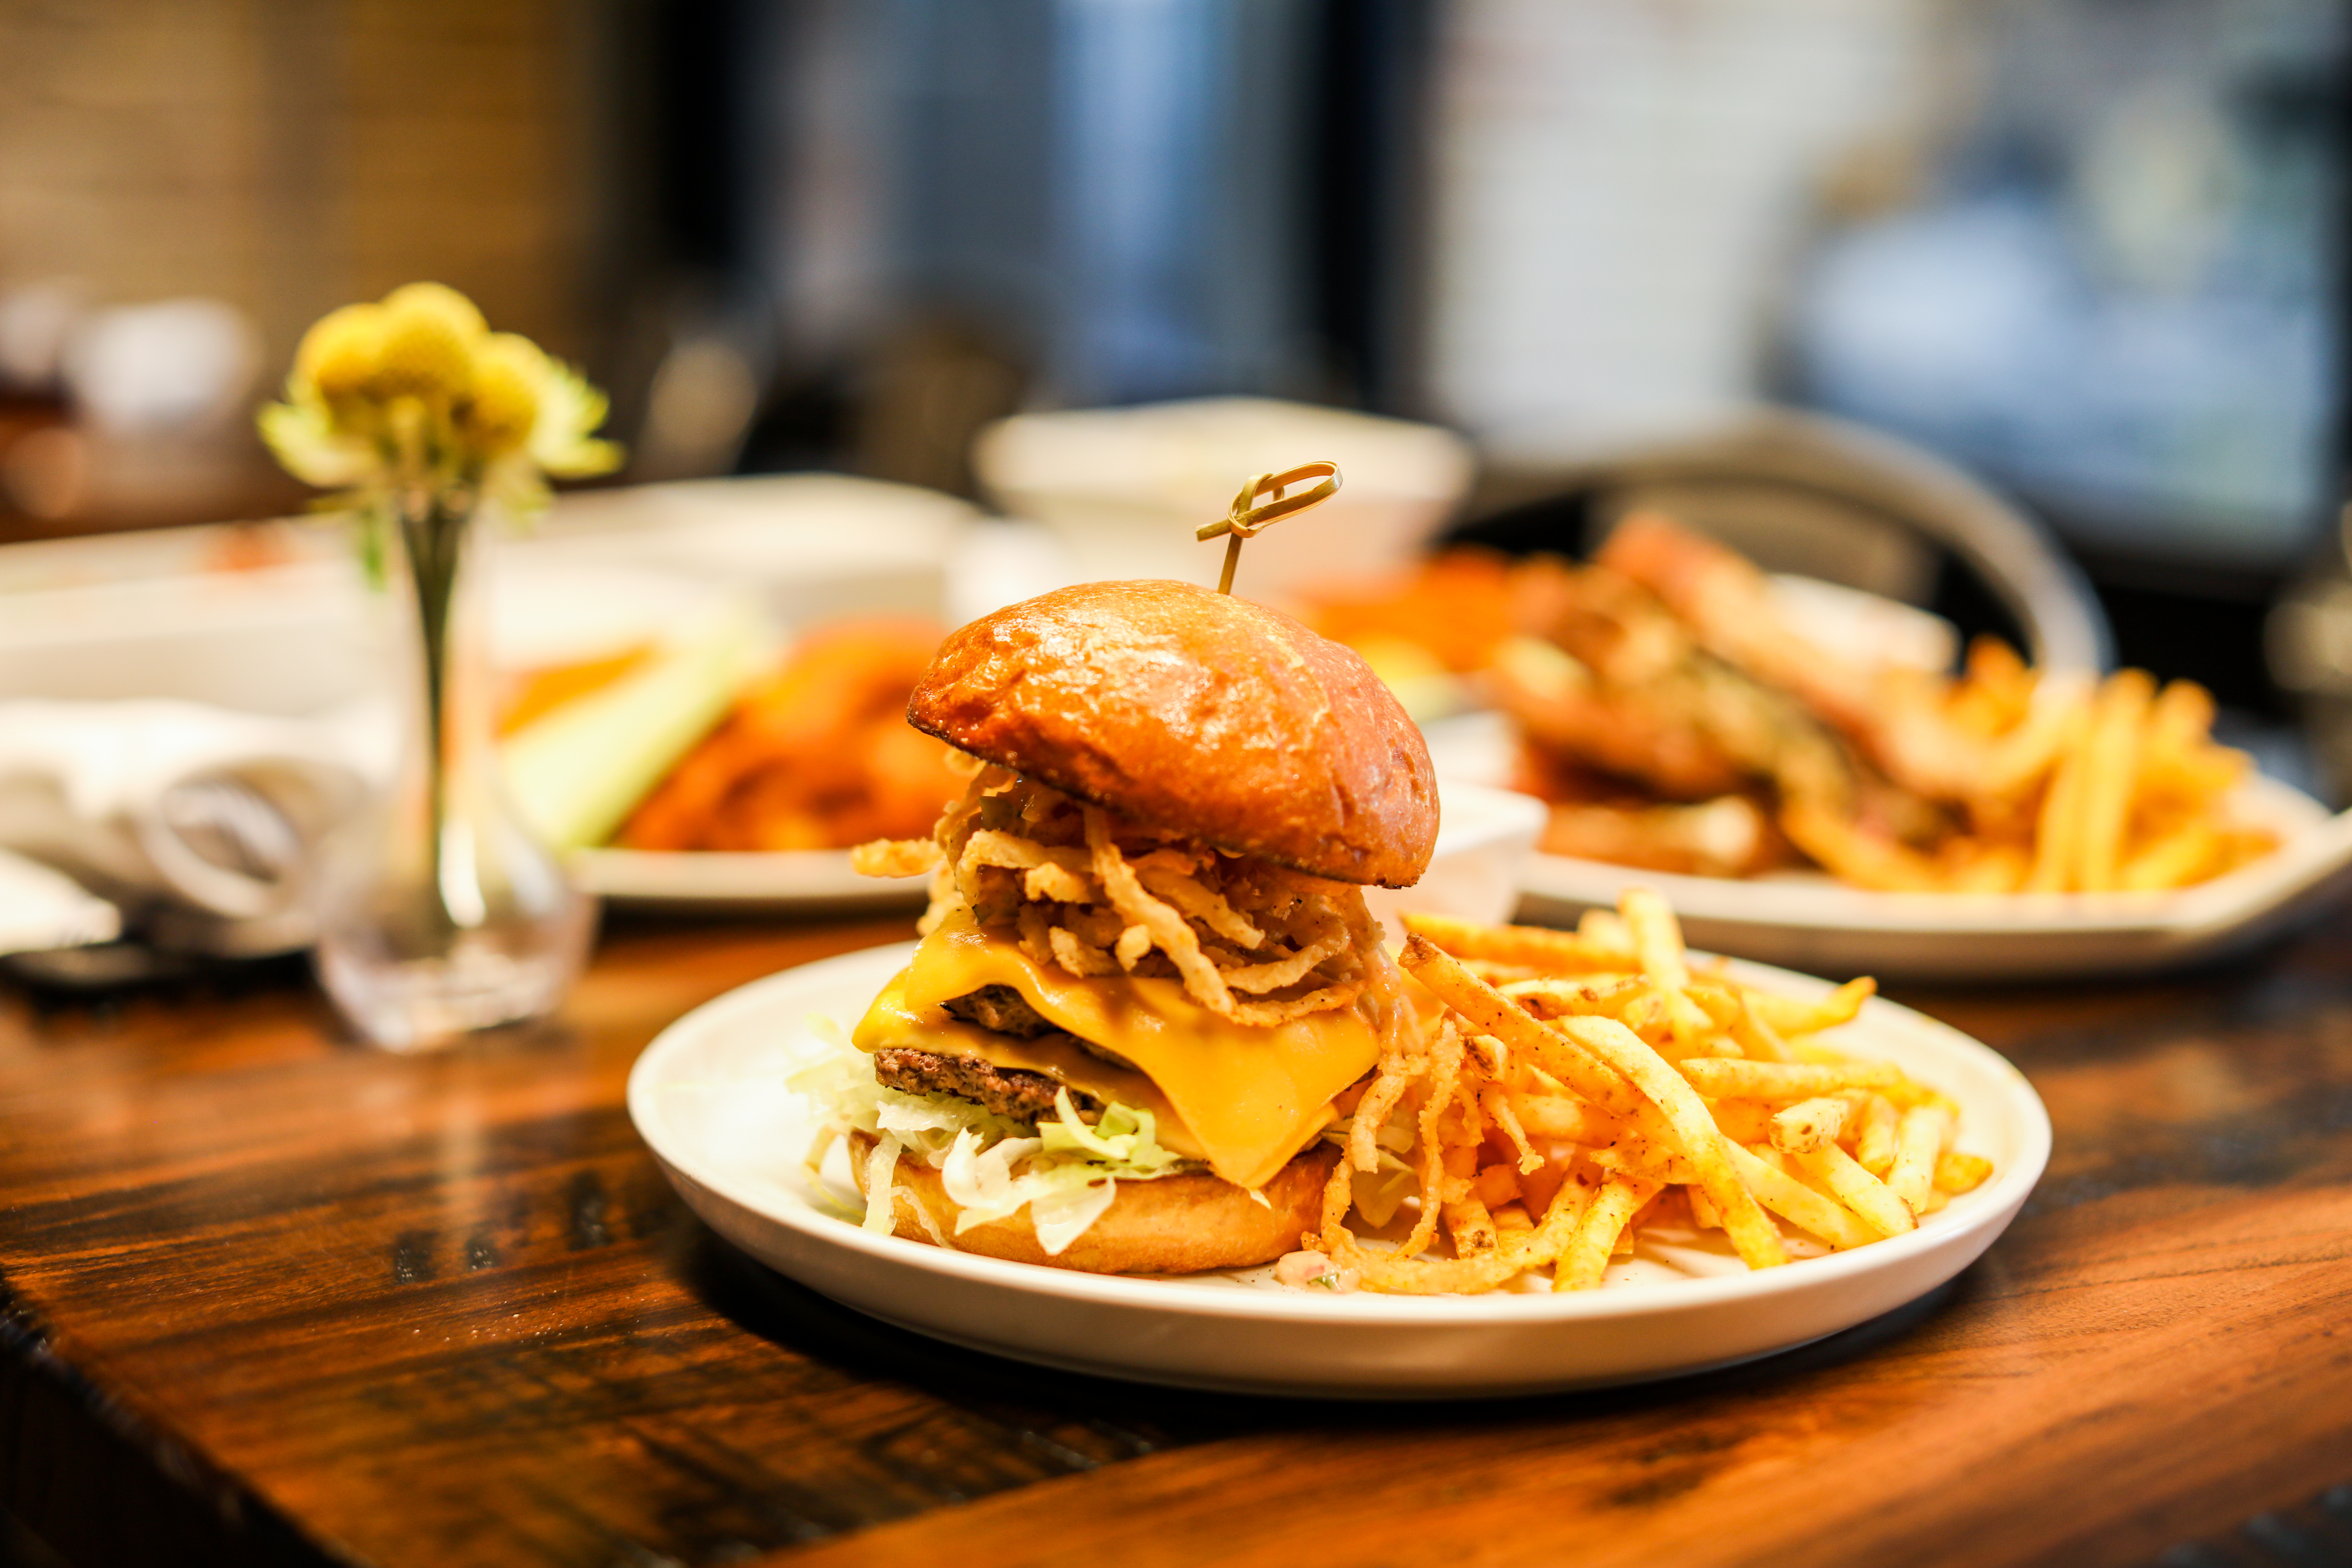 A tall burger with onion rings inside and fries on the plate on a table with a flower